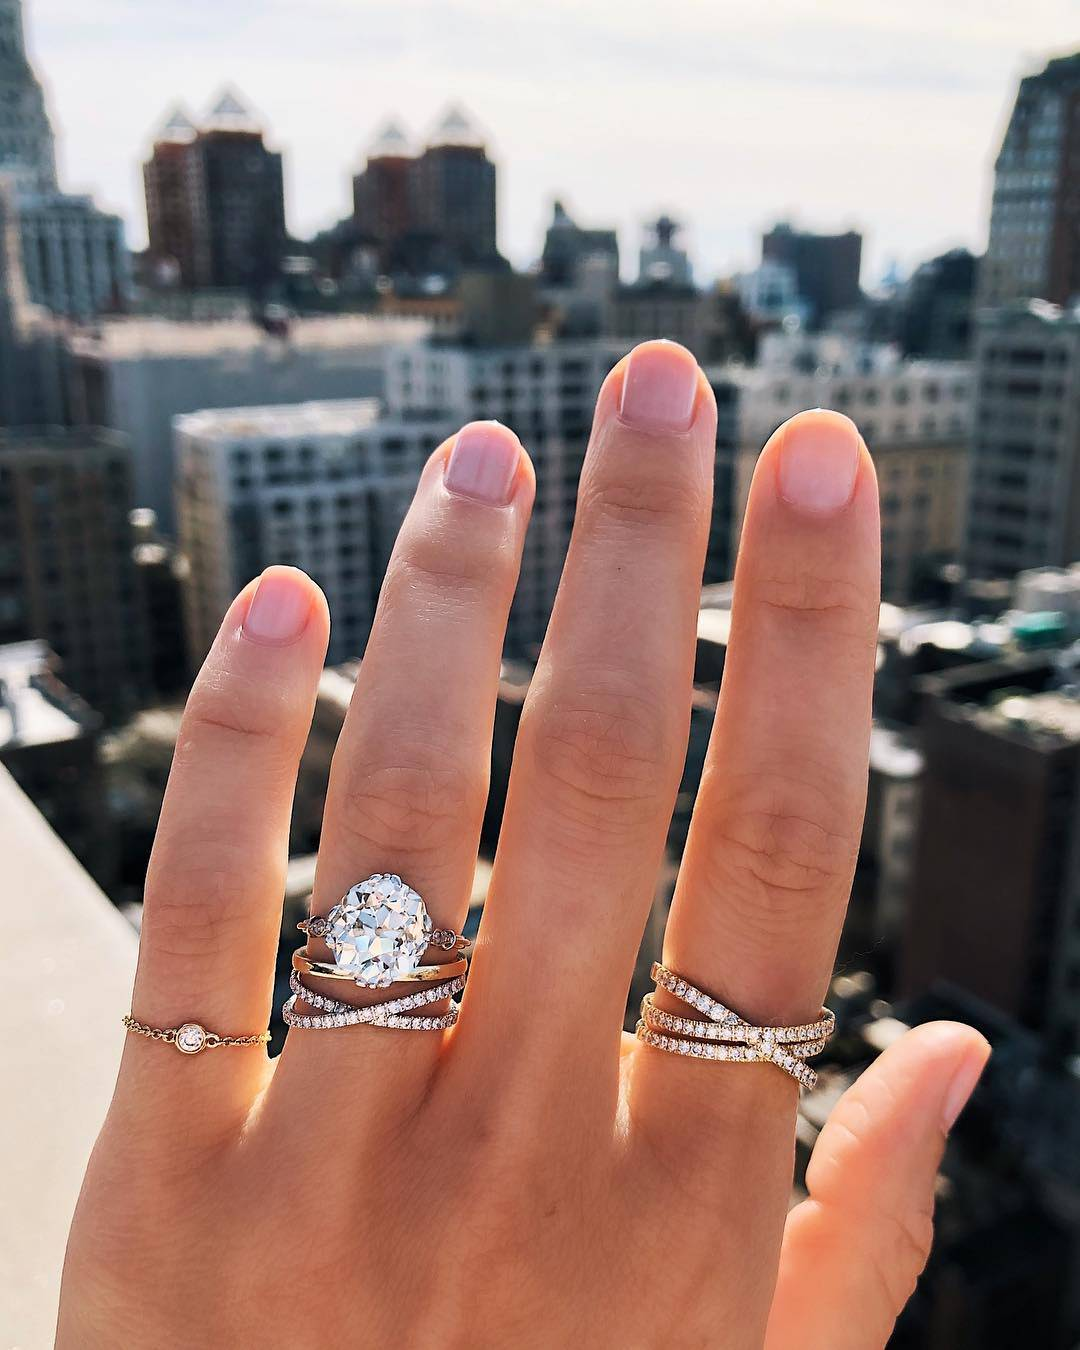 10 Unique Wedding Bands That Make a Statement on Their Own – Ring